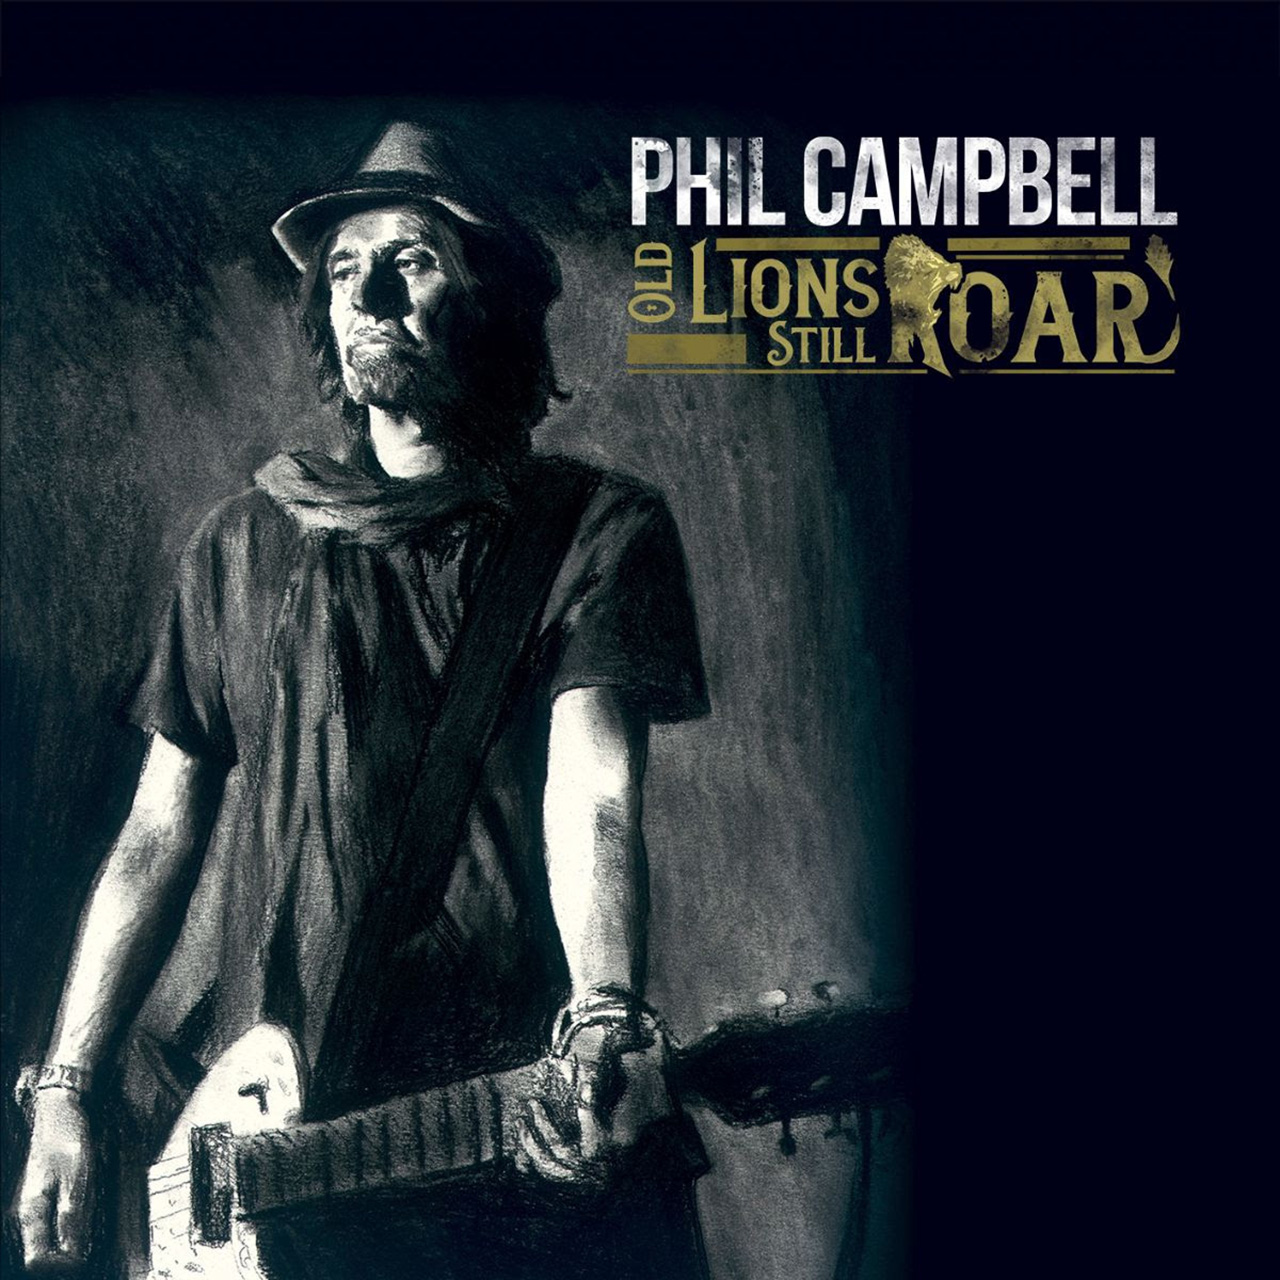 Phil Campbell teams up with Alice Cooper on explosive new track Swing It | Louder